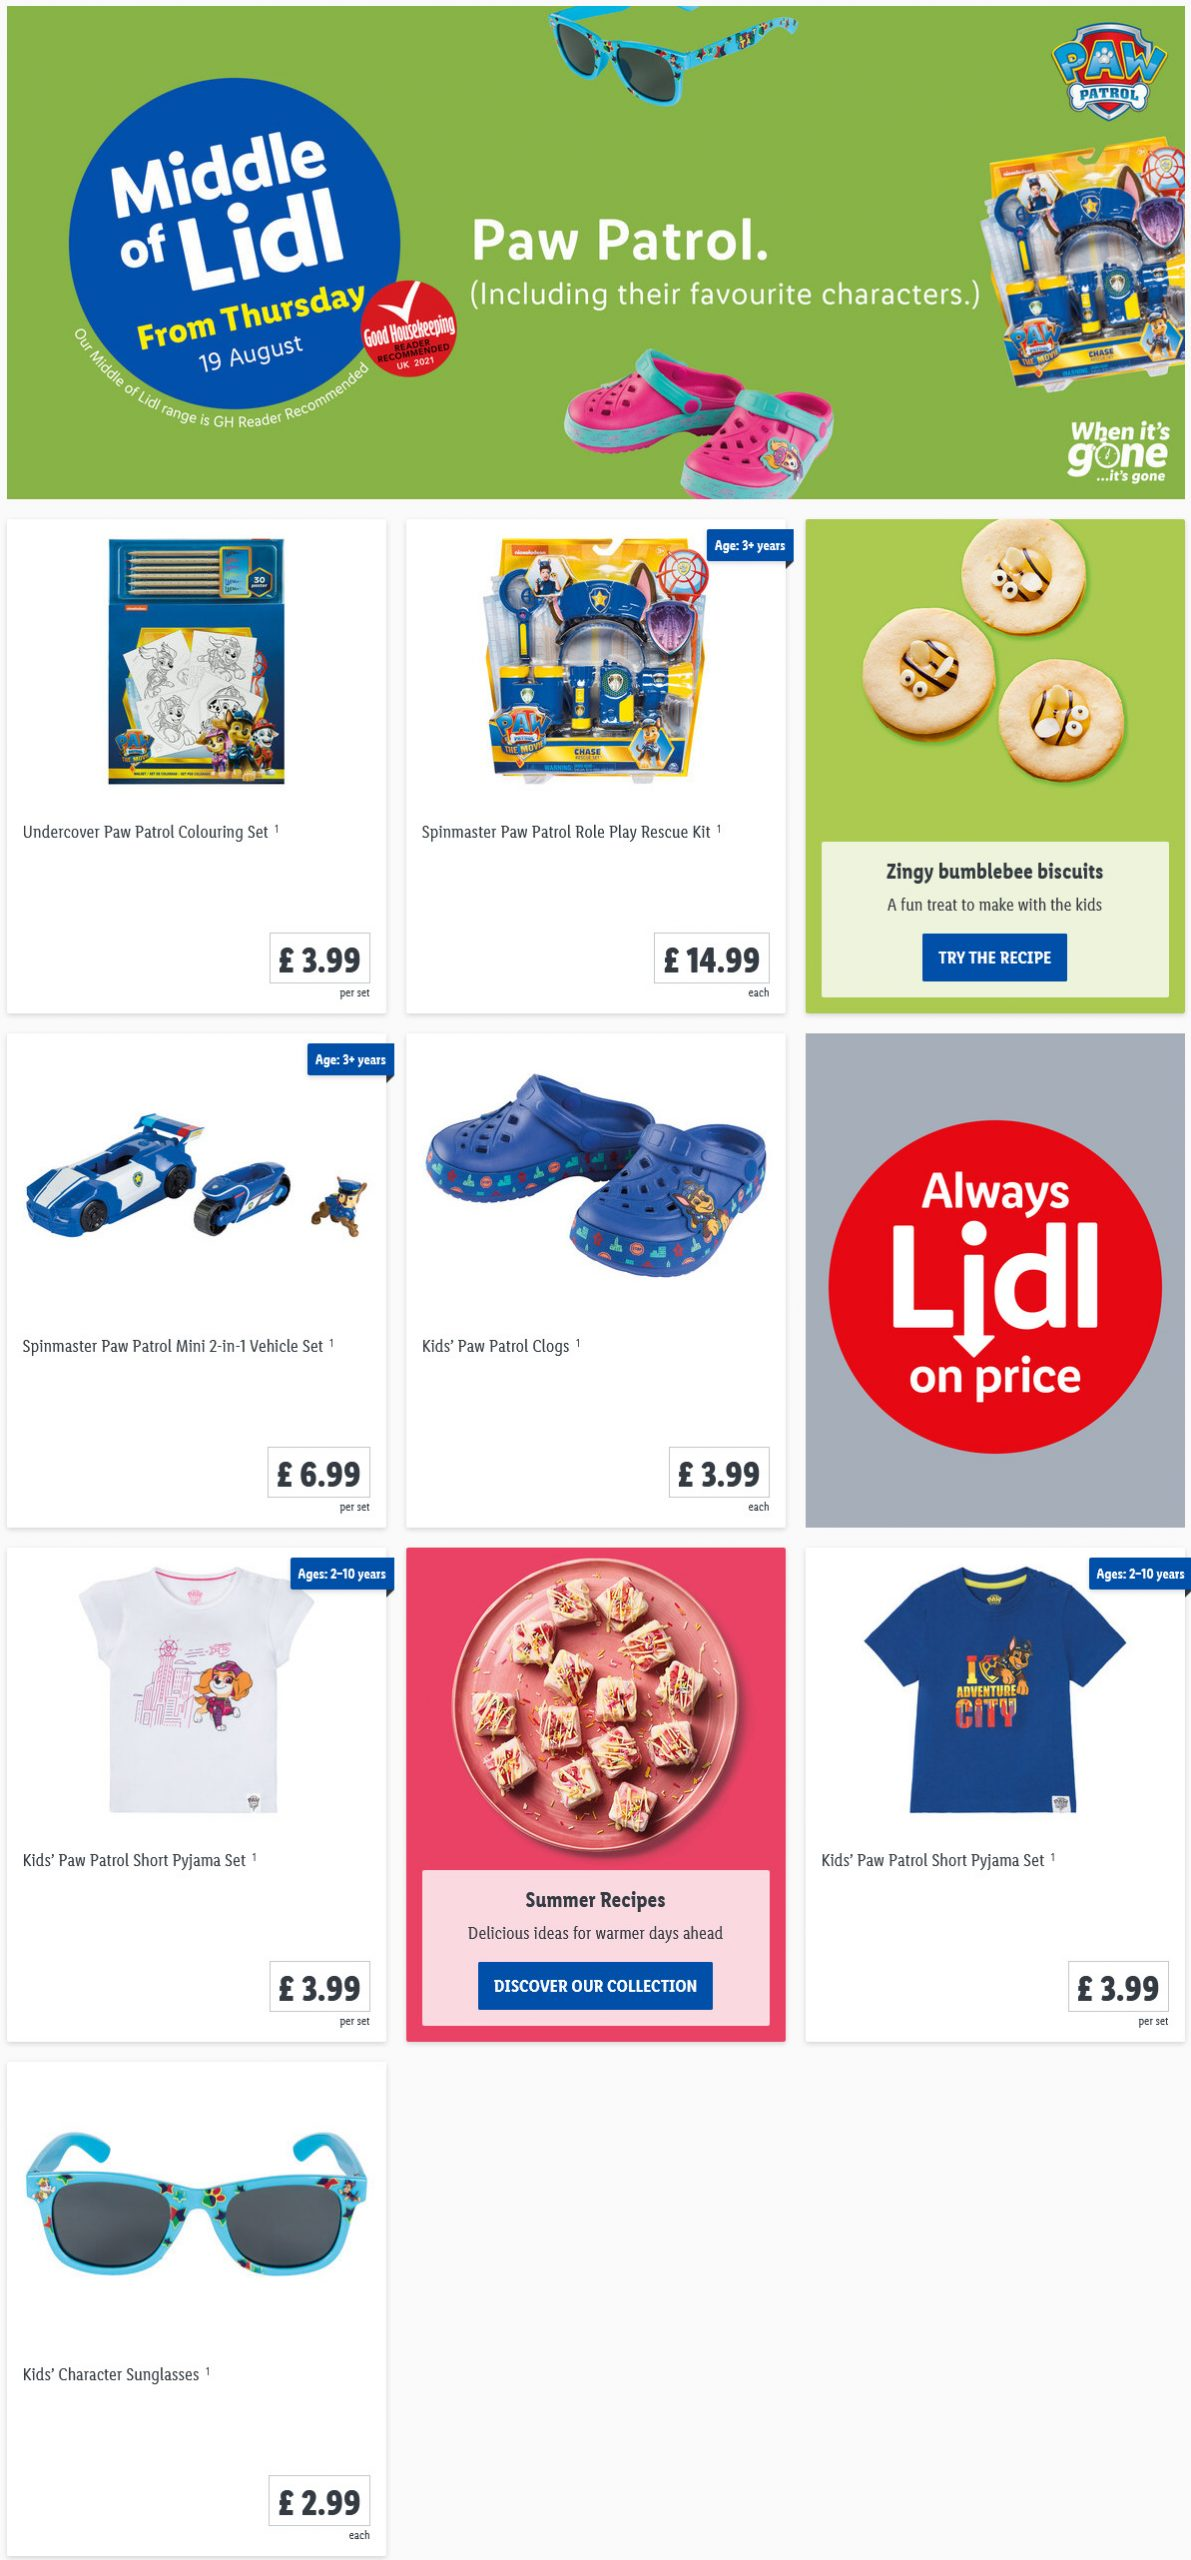 LIDL Offers this Thursday Paw Patrol From 19th August 2021